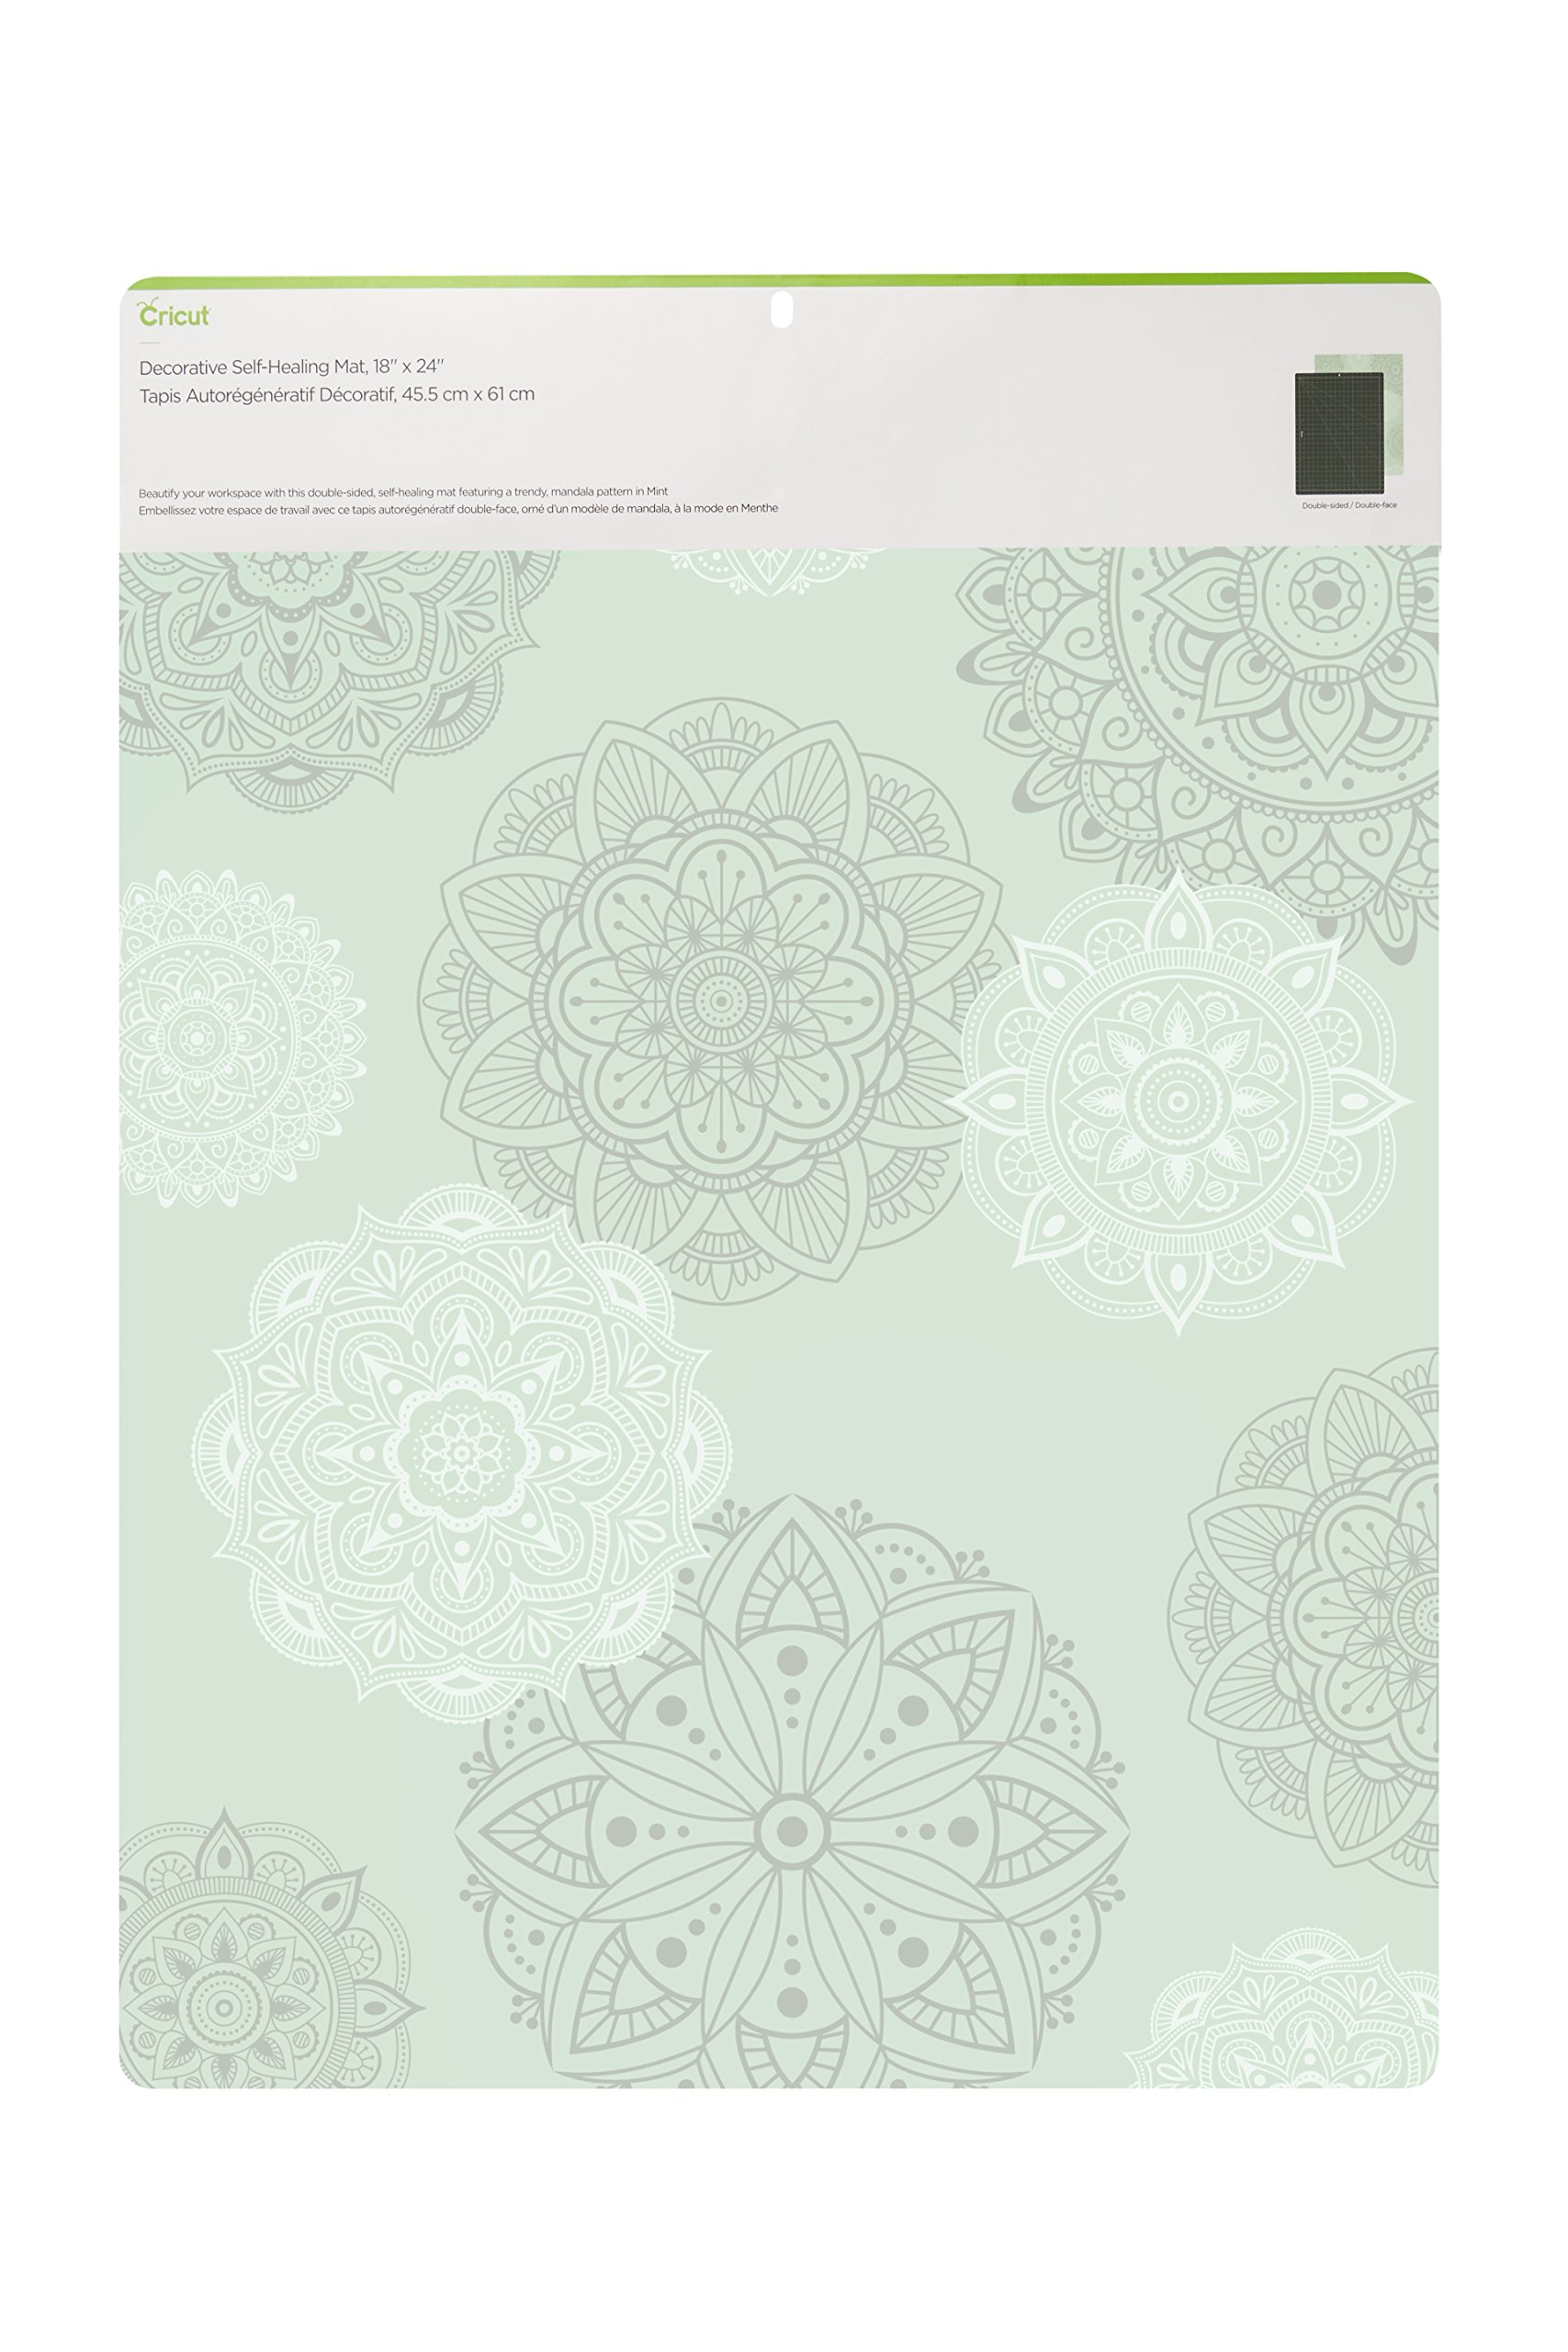 Cricut 2004712 18'' x 24'' Deco Self Healing Mat, 18x24-Inches, Mint by Cricut